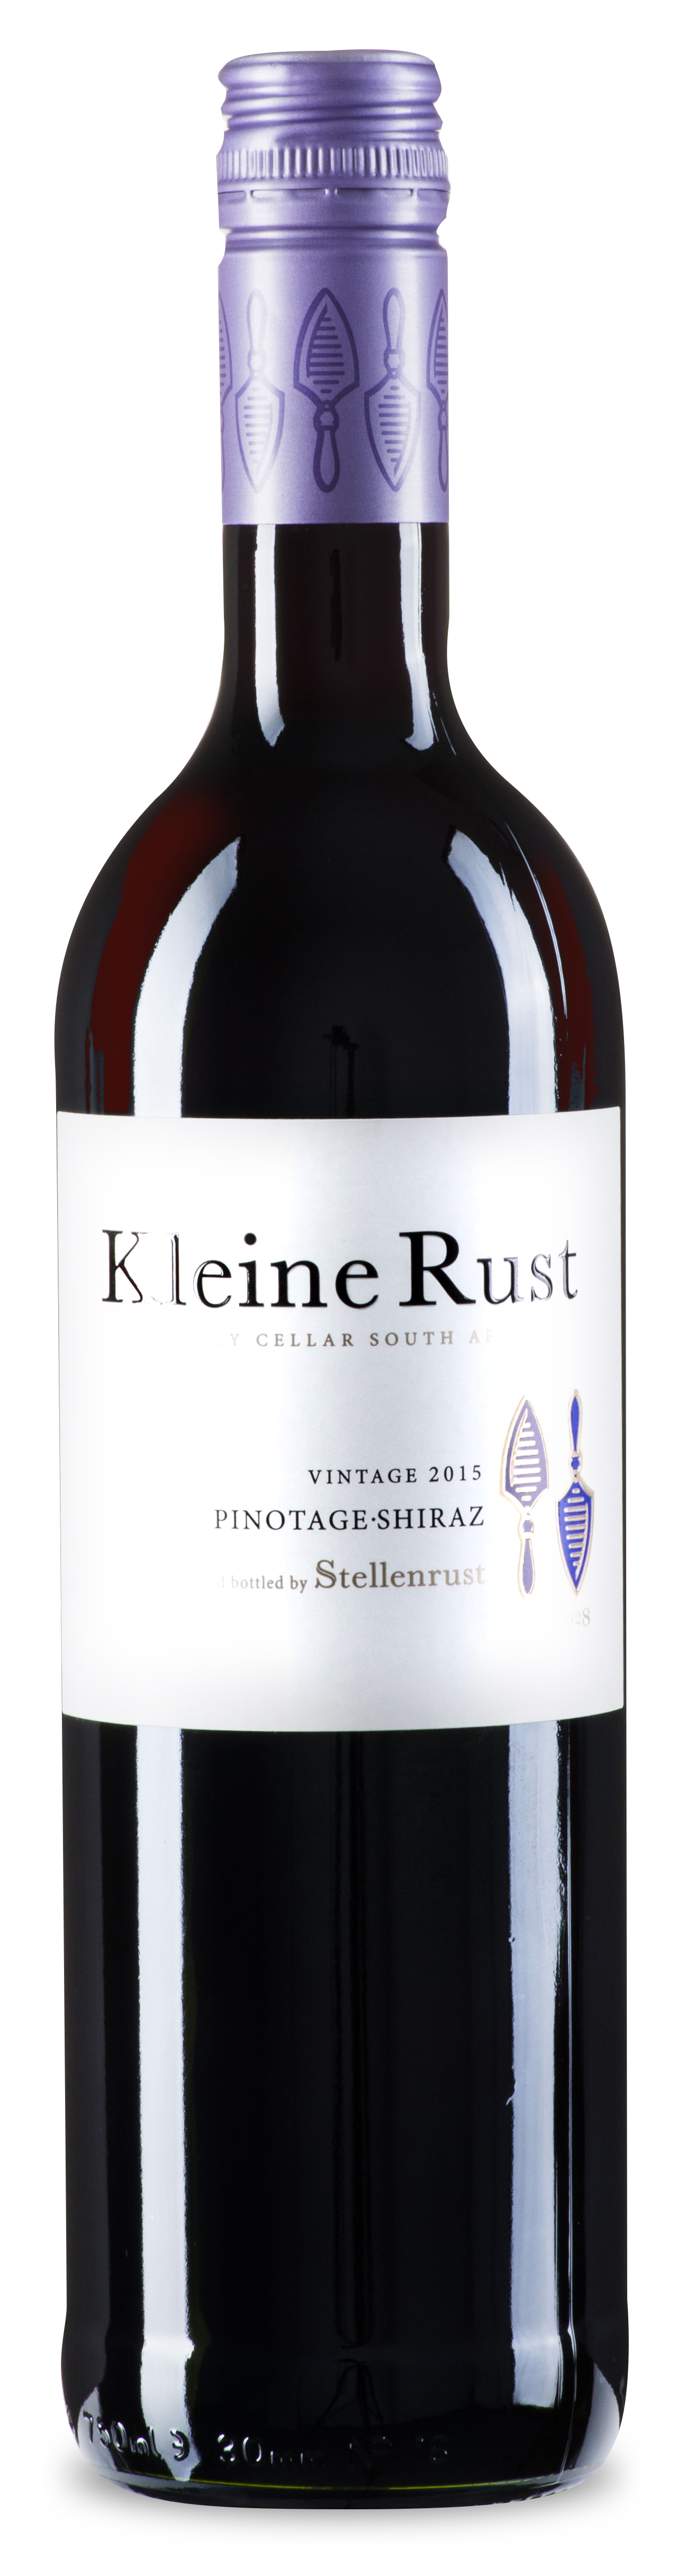 Stellenrust Kleine Rust red